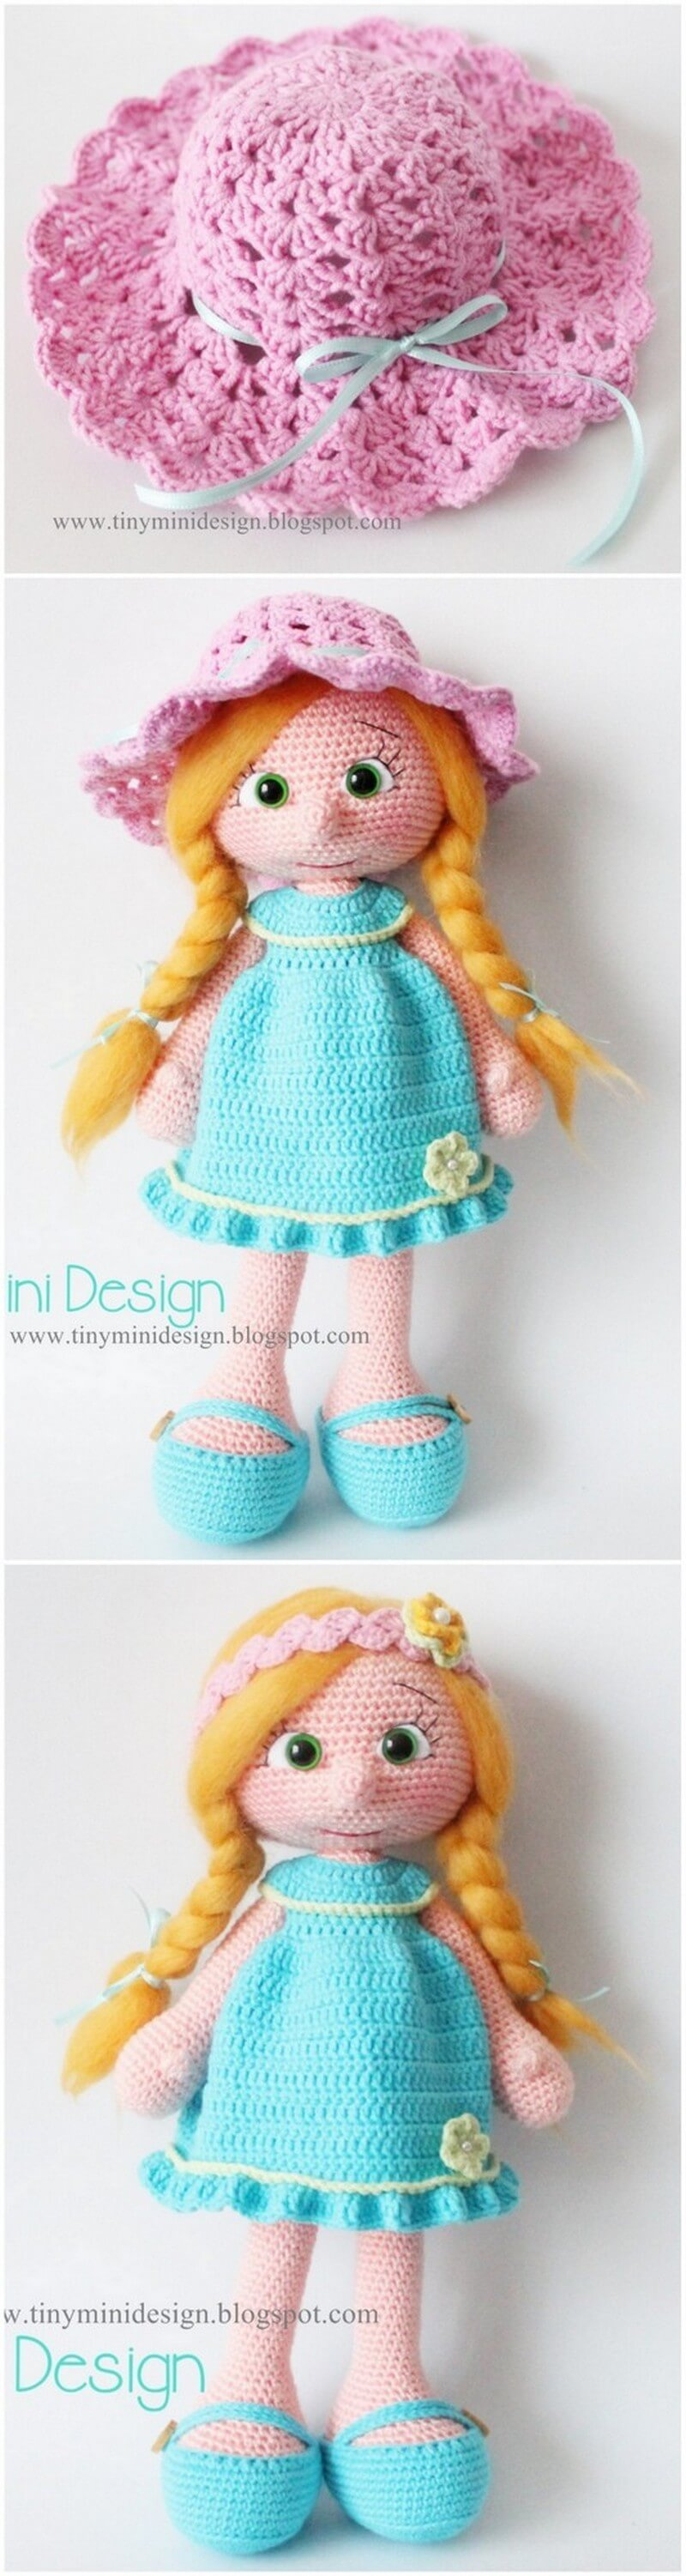 Crochet Amigurumi Doll Pattern (24)